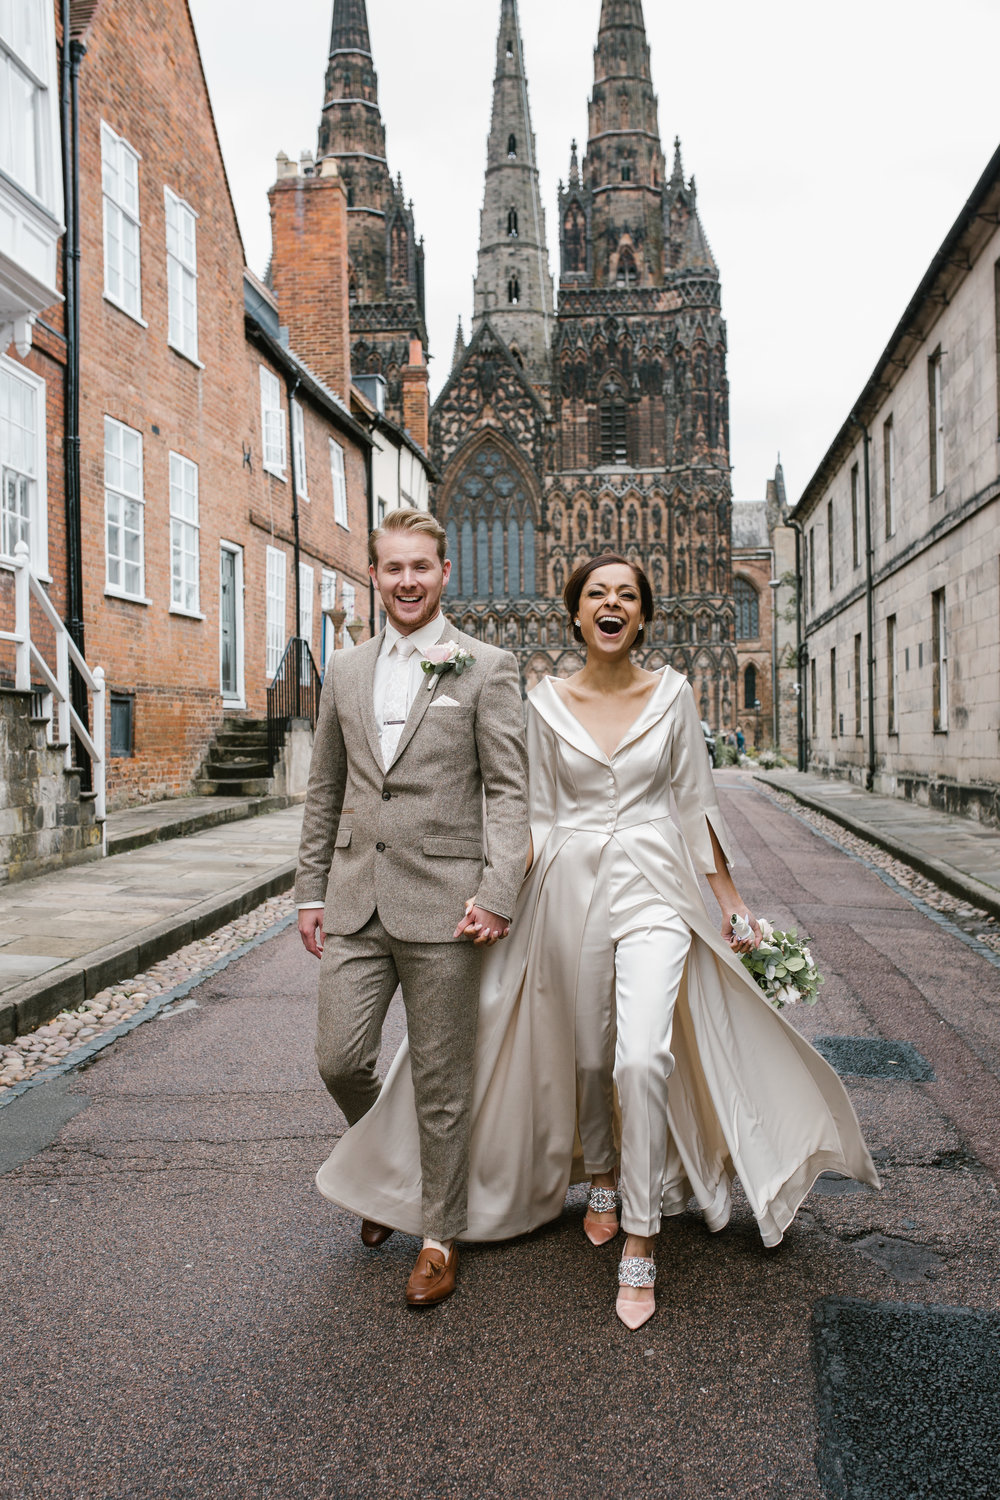 fun photo of bride and groom walking hand in hand with lichfield cathedral in the background- lichfield wedding photographer